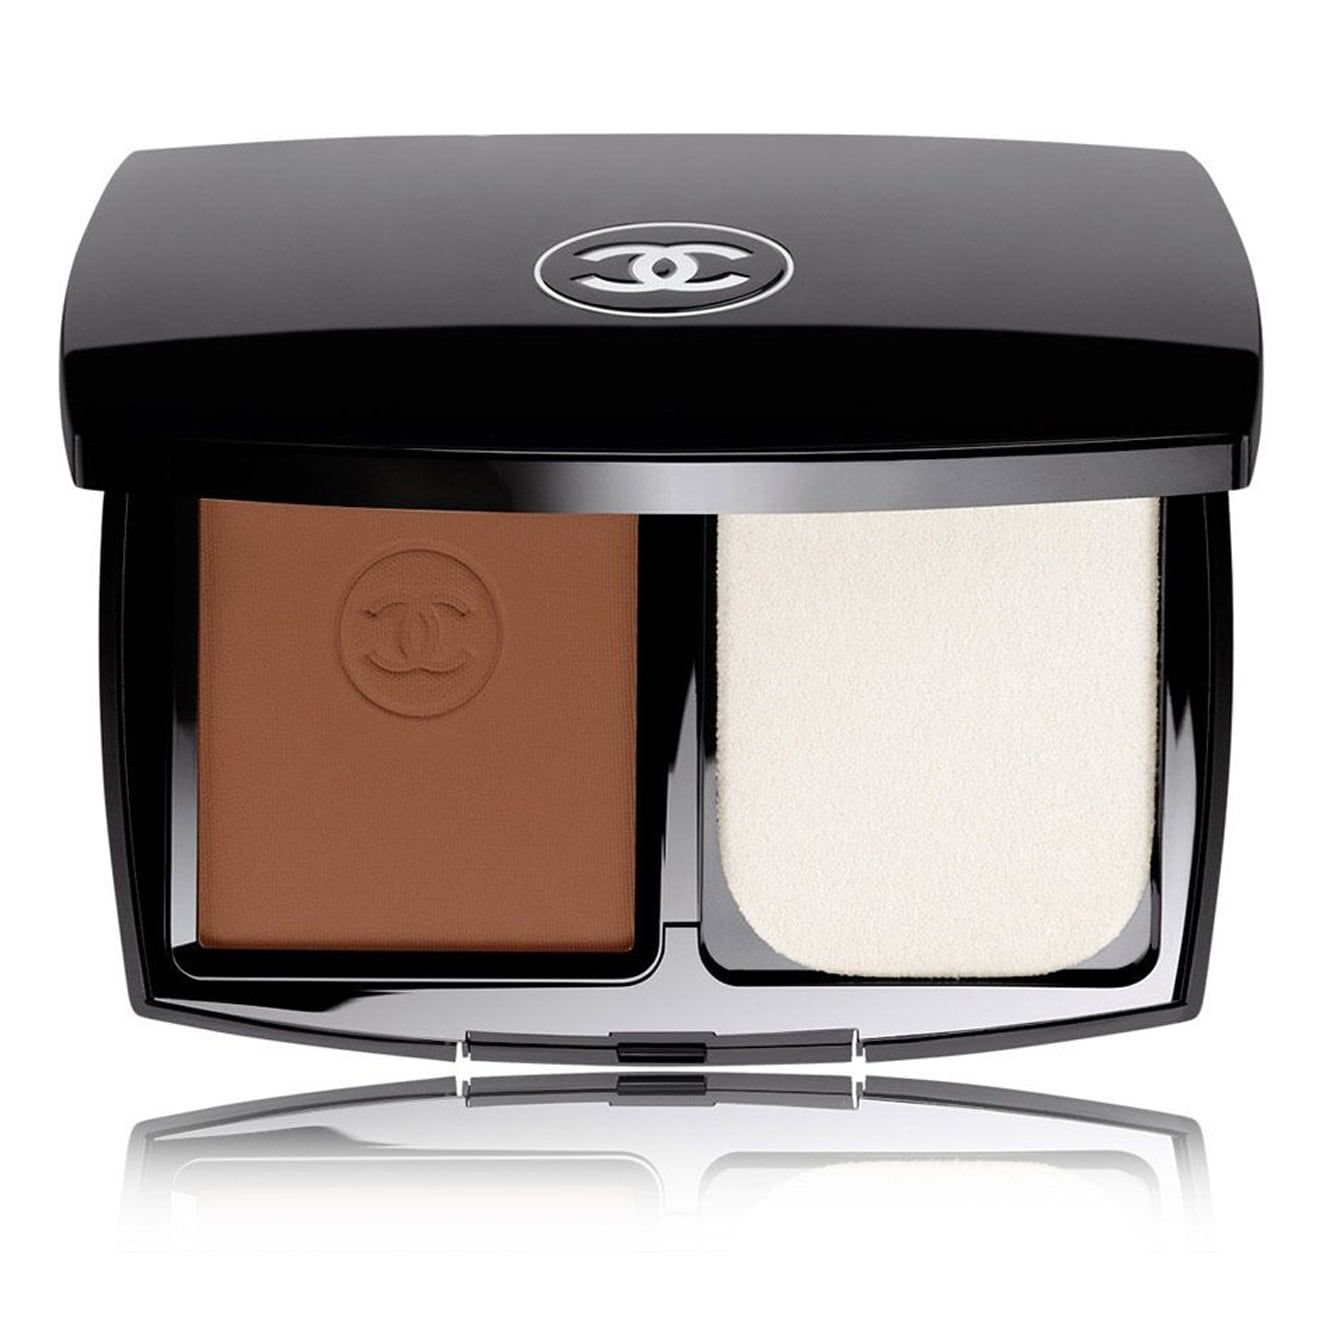 For Full Coverage Le Teint Ultra Tenue Ultrawear Flawless Compact Chanel nordstrom.com $60.00 SHOP NOW The velvety formula gives the most natural, matte finish and lends itself well to quick touch-ups throughout the day.